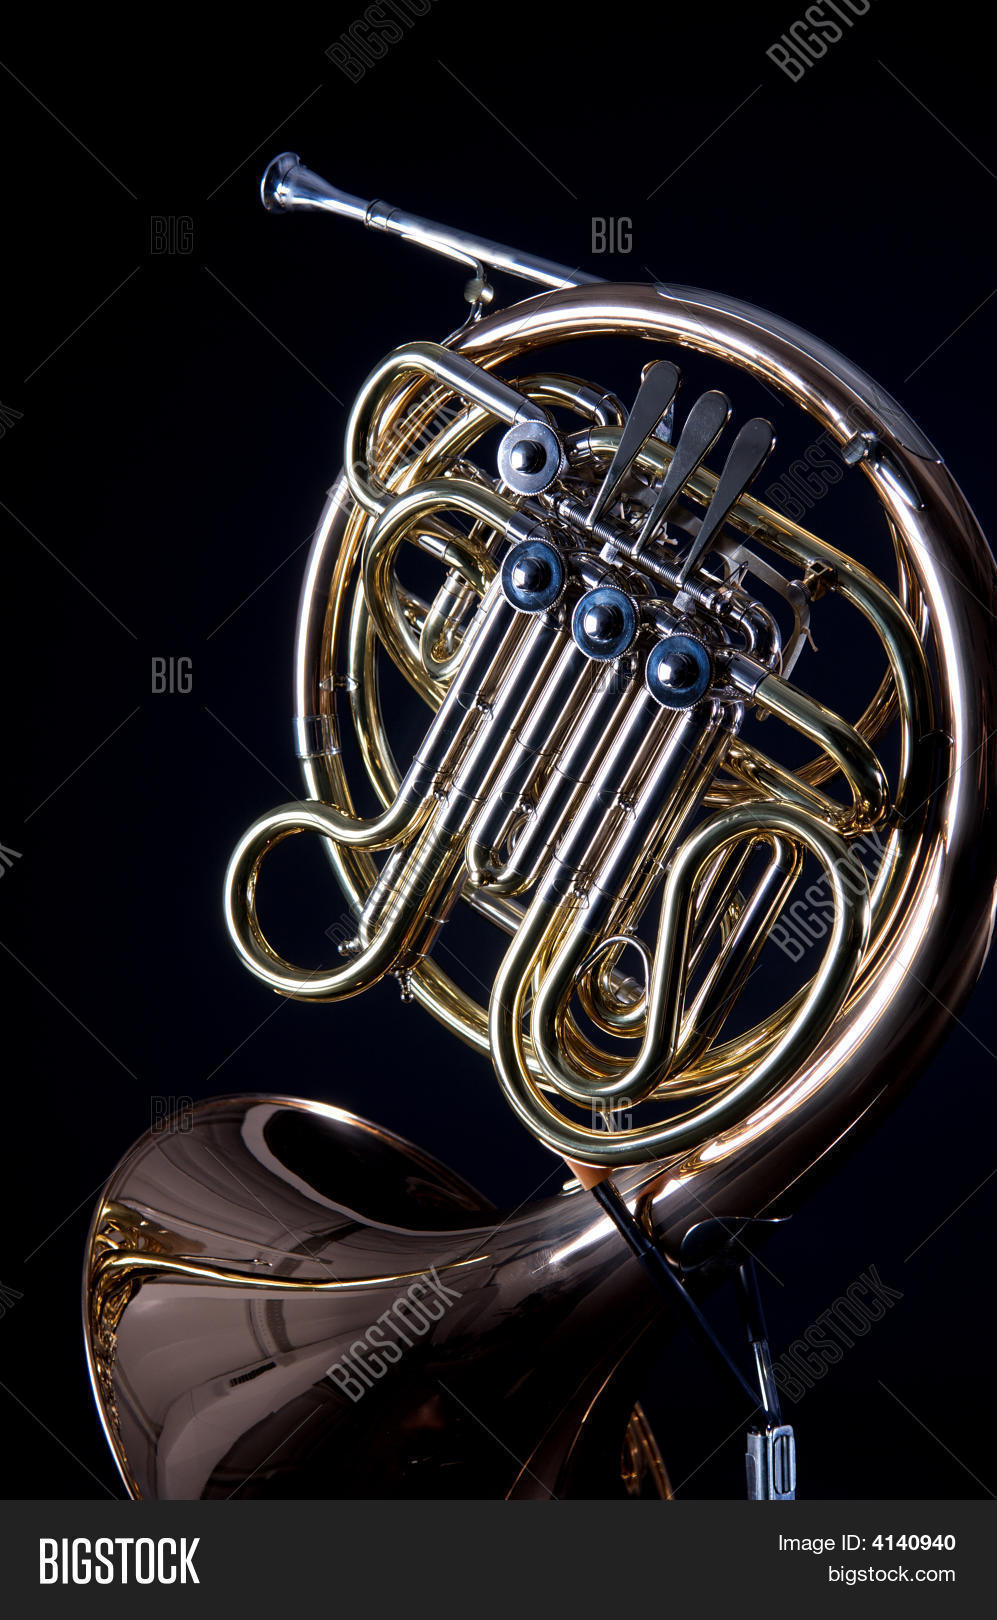 French Horn On Black Image & Photo | Bigstock